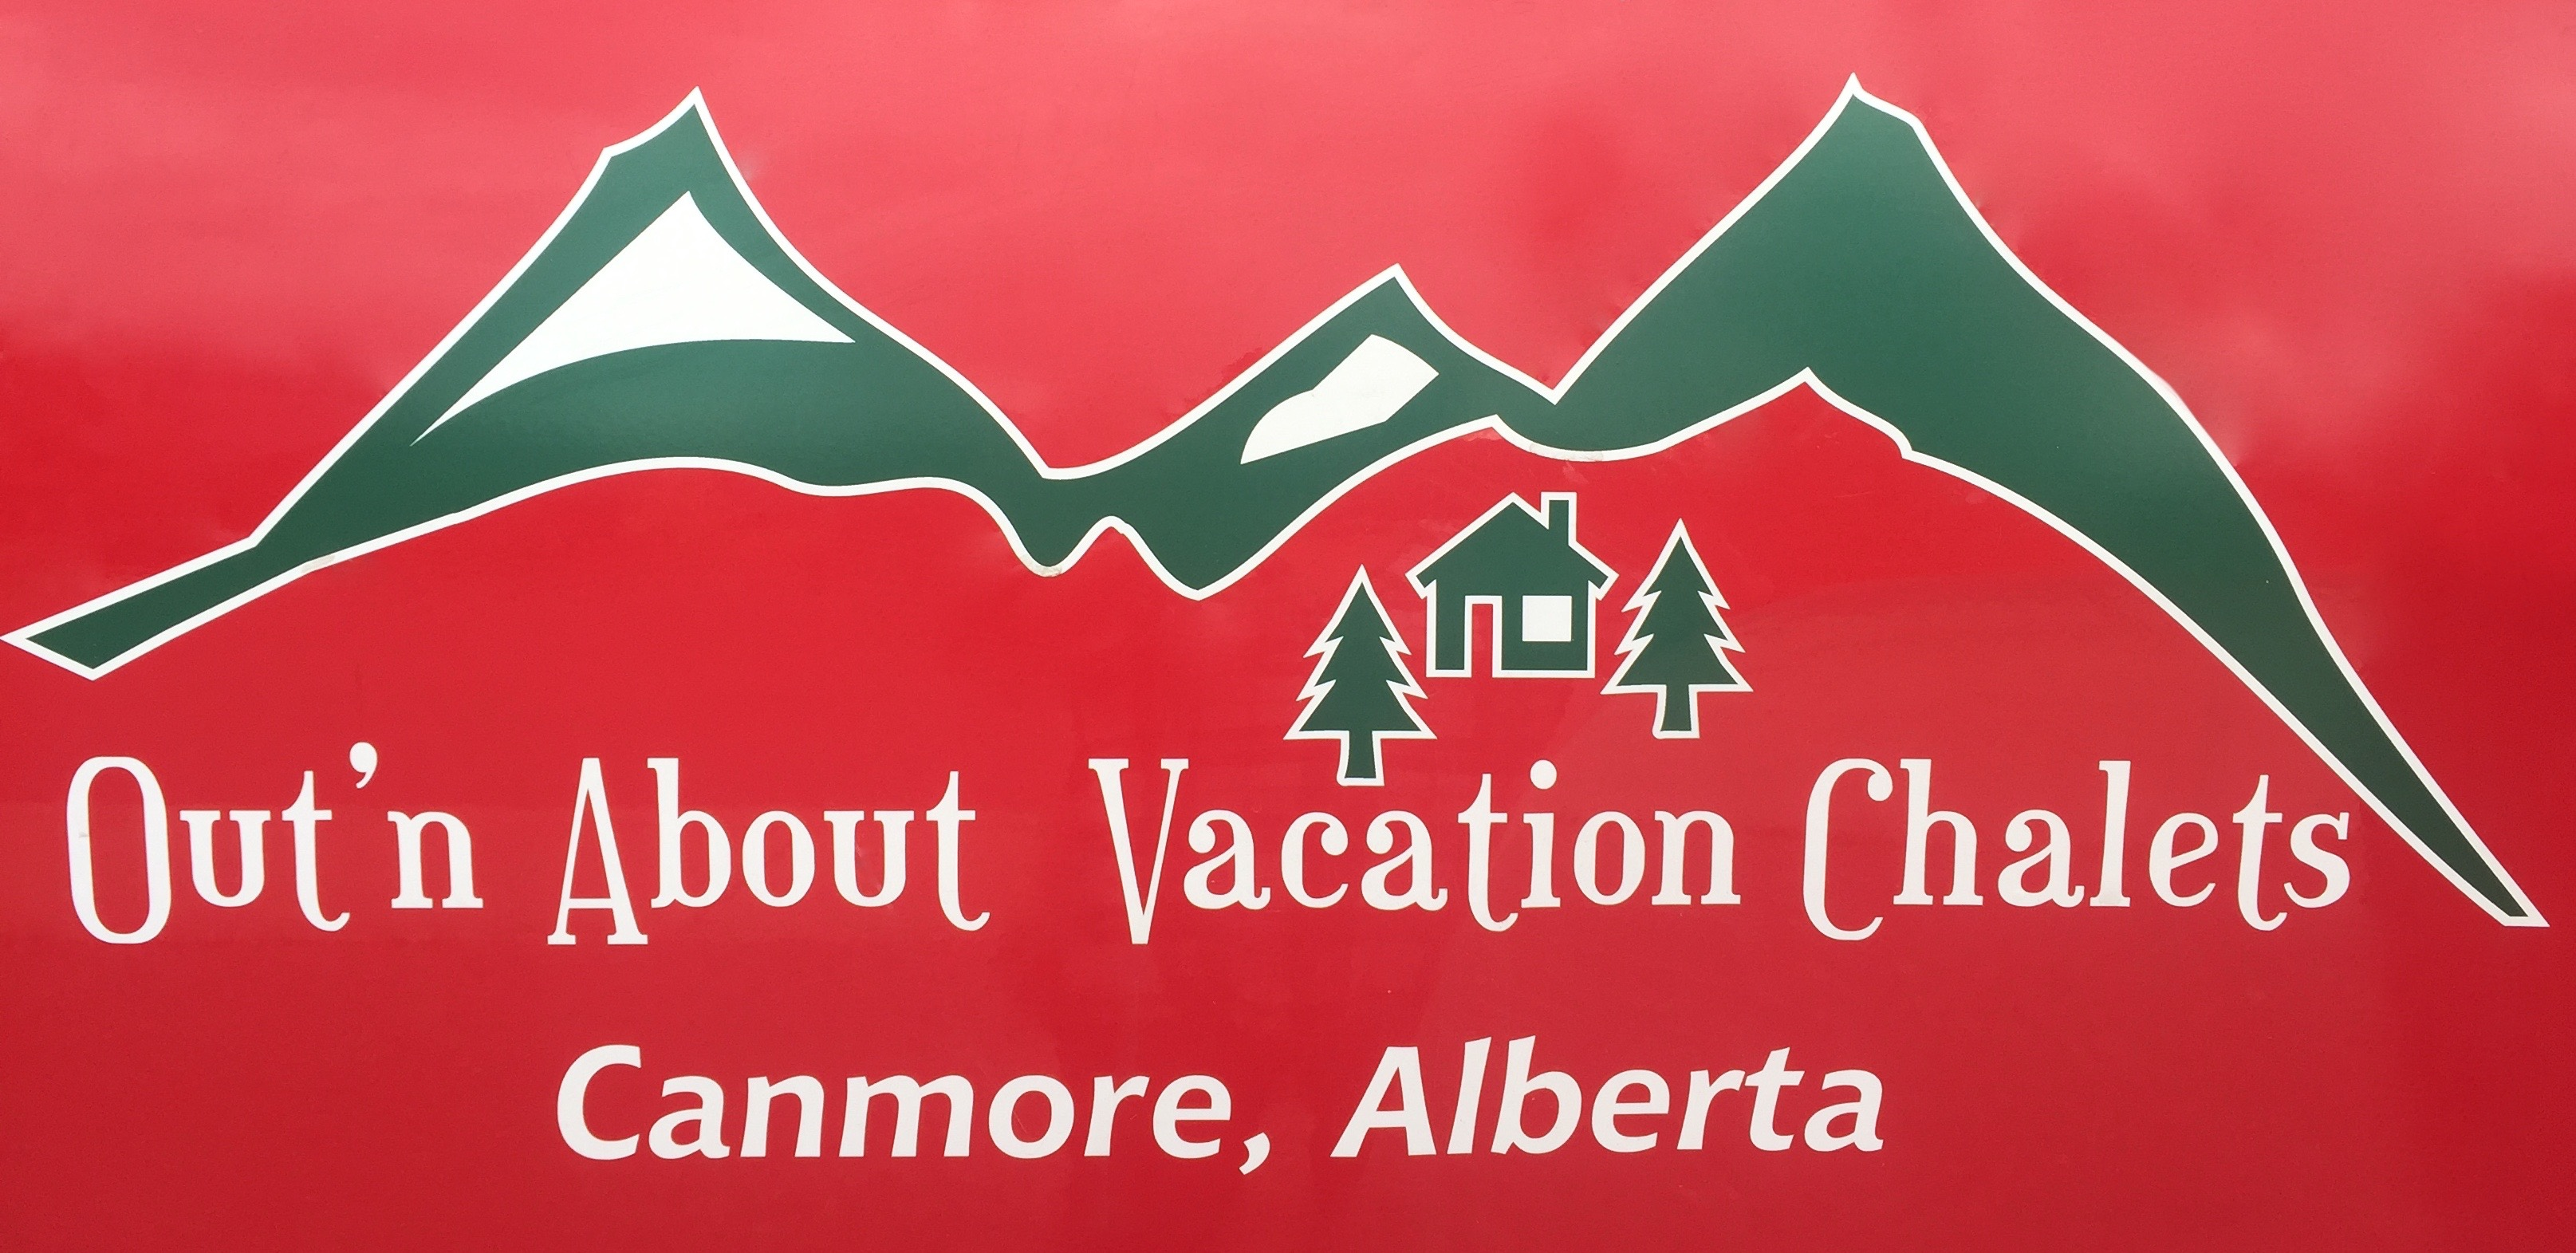 Canmore Vacation Rentals Canmore Vacation Rentals by Owner Canmore